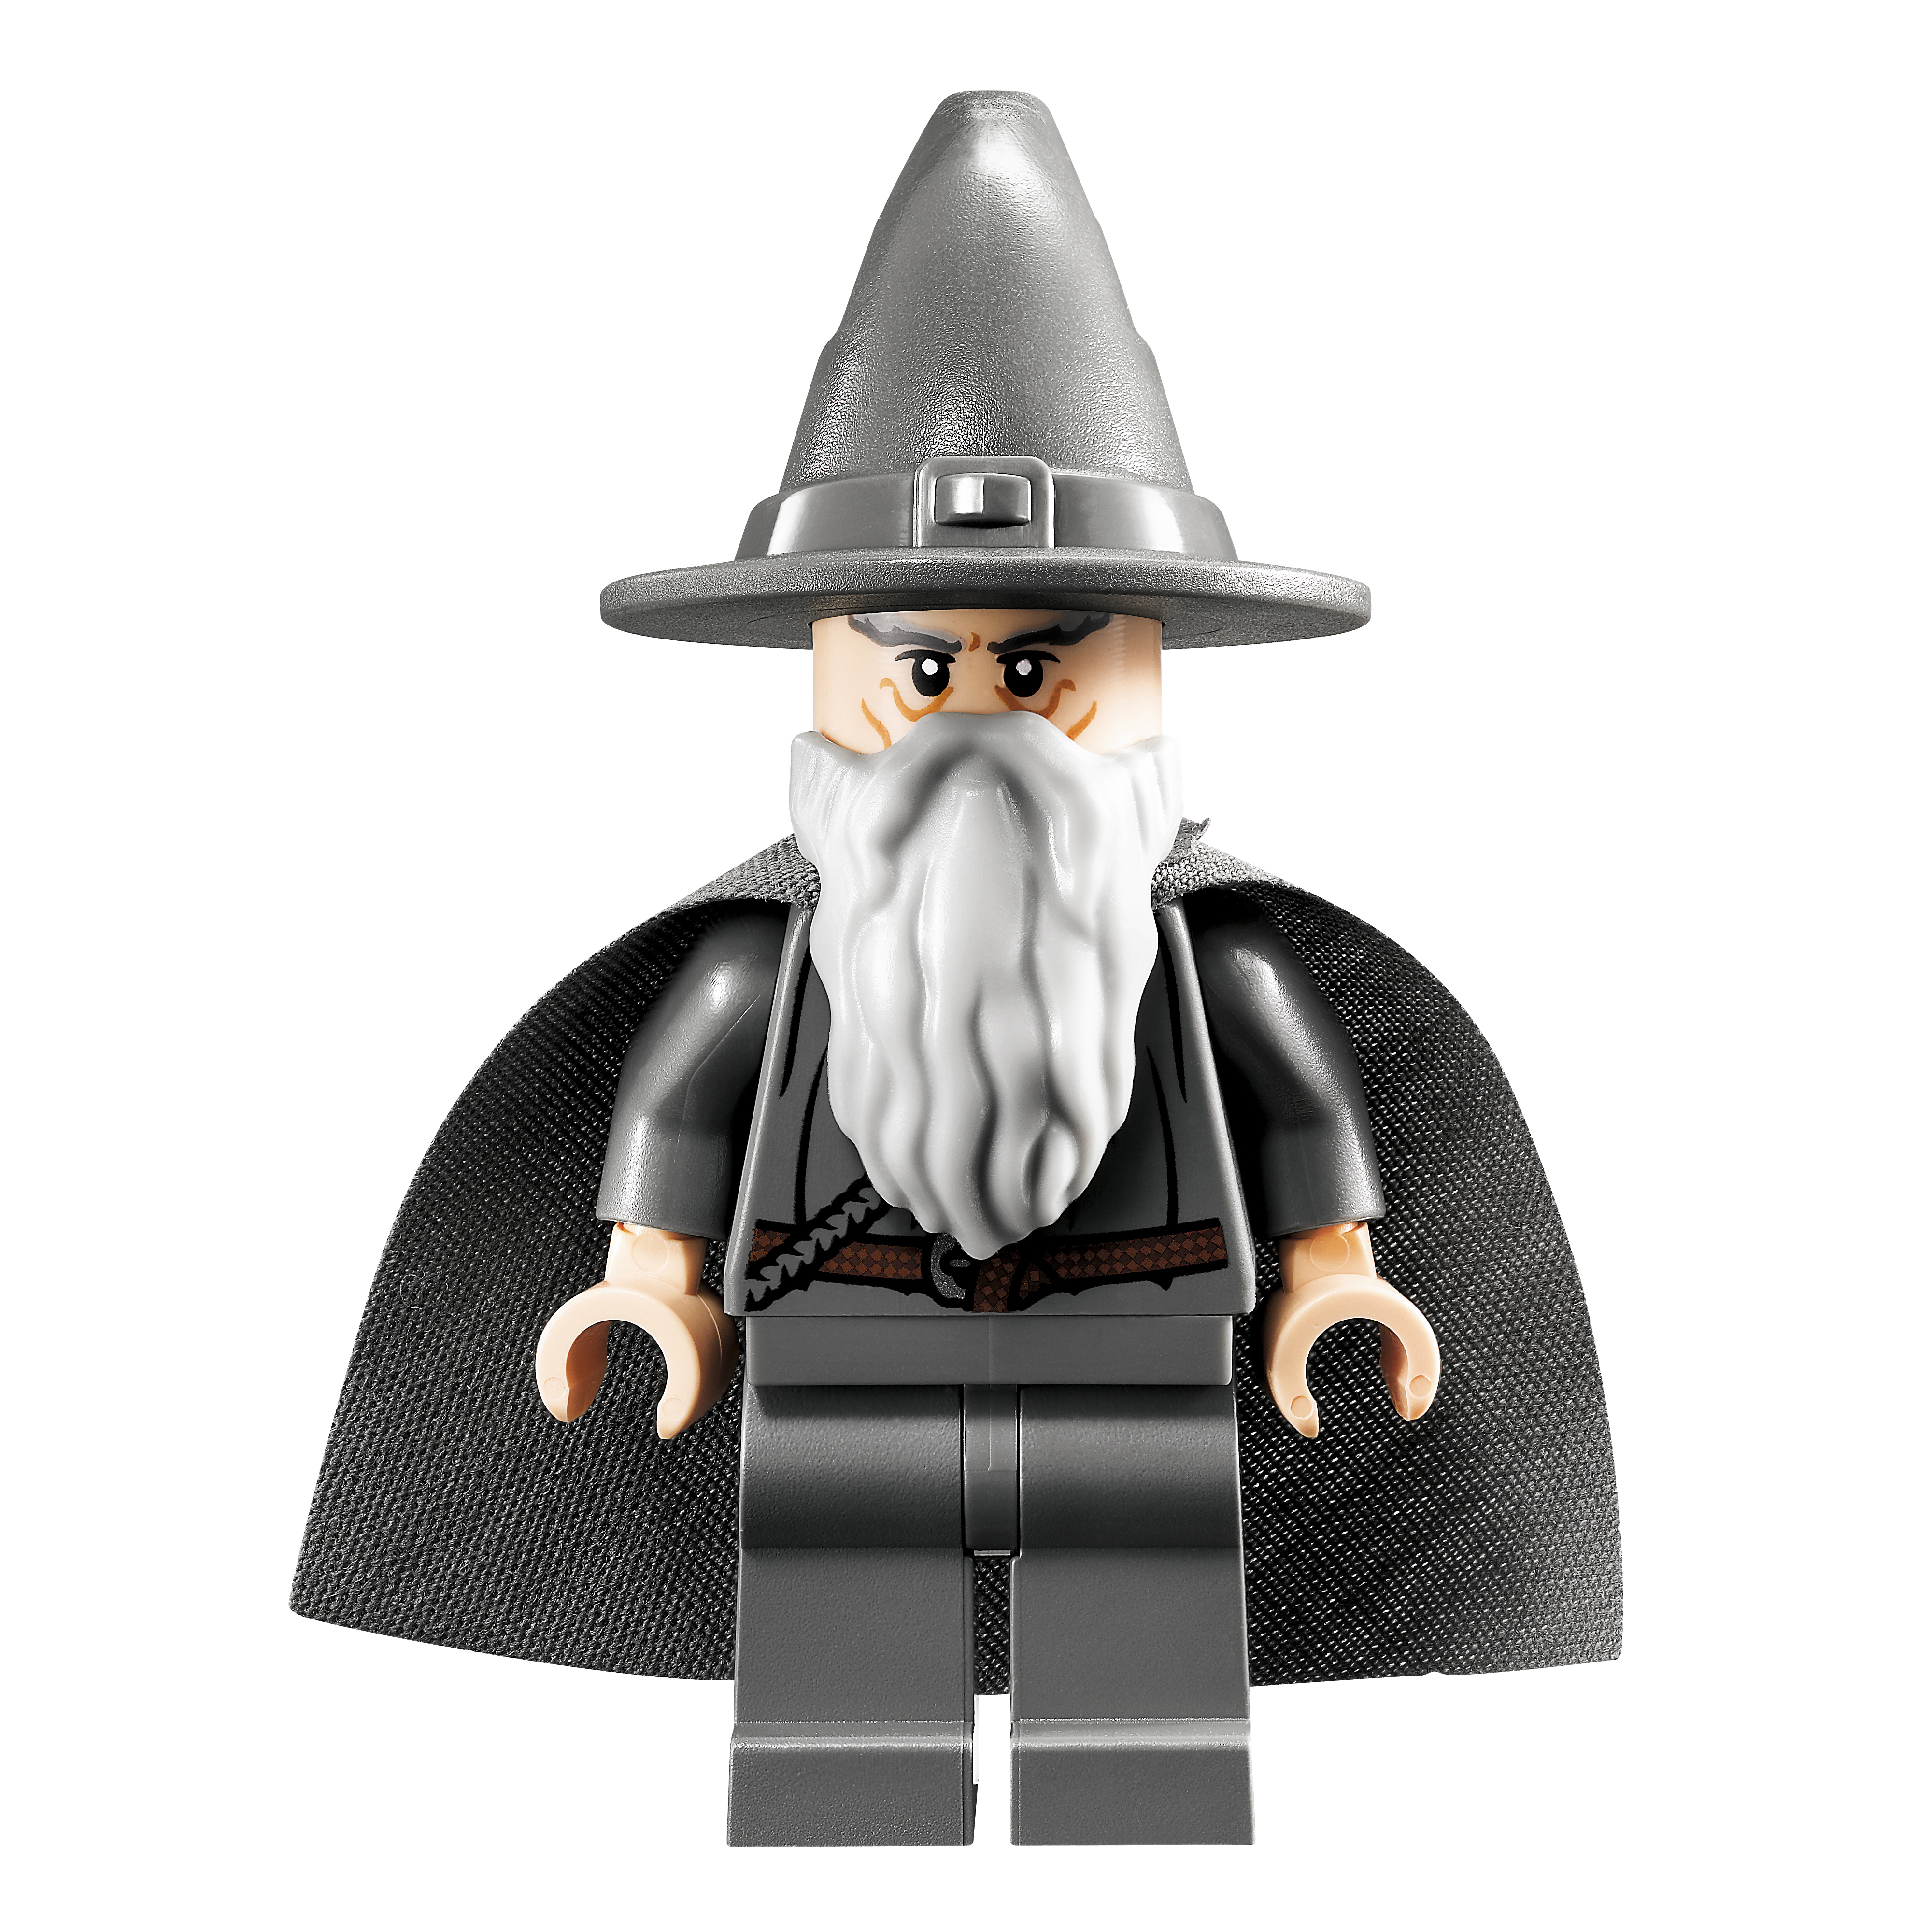 n_79003_gandalf_the_gray.jpg